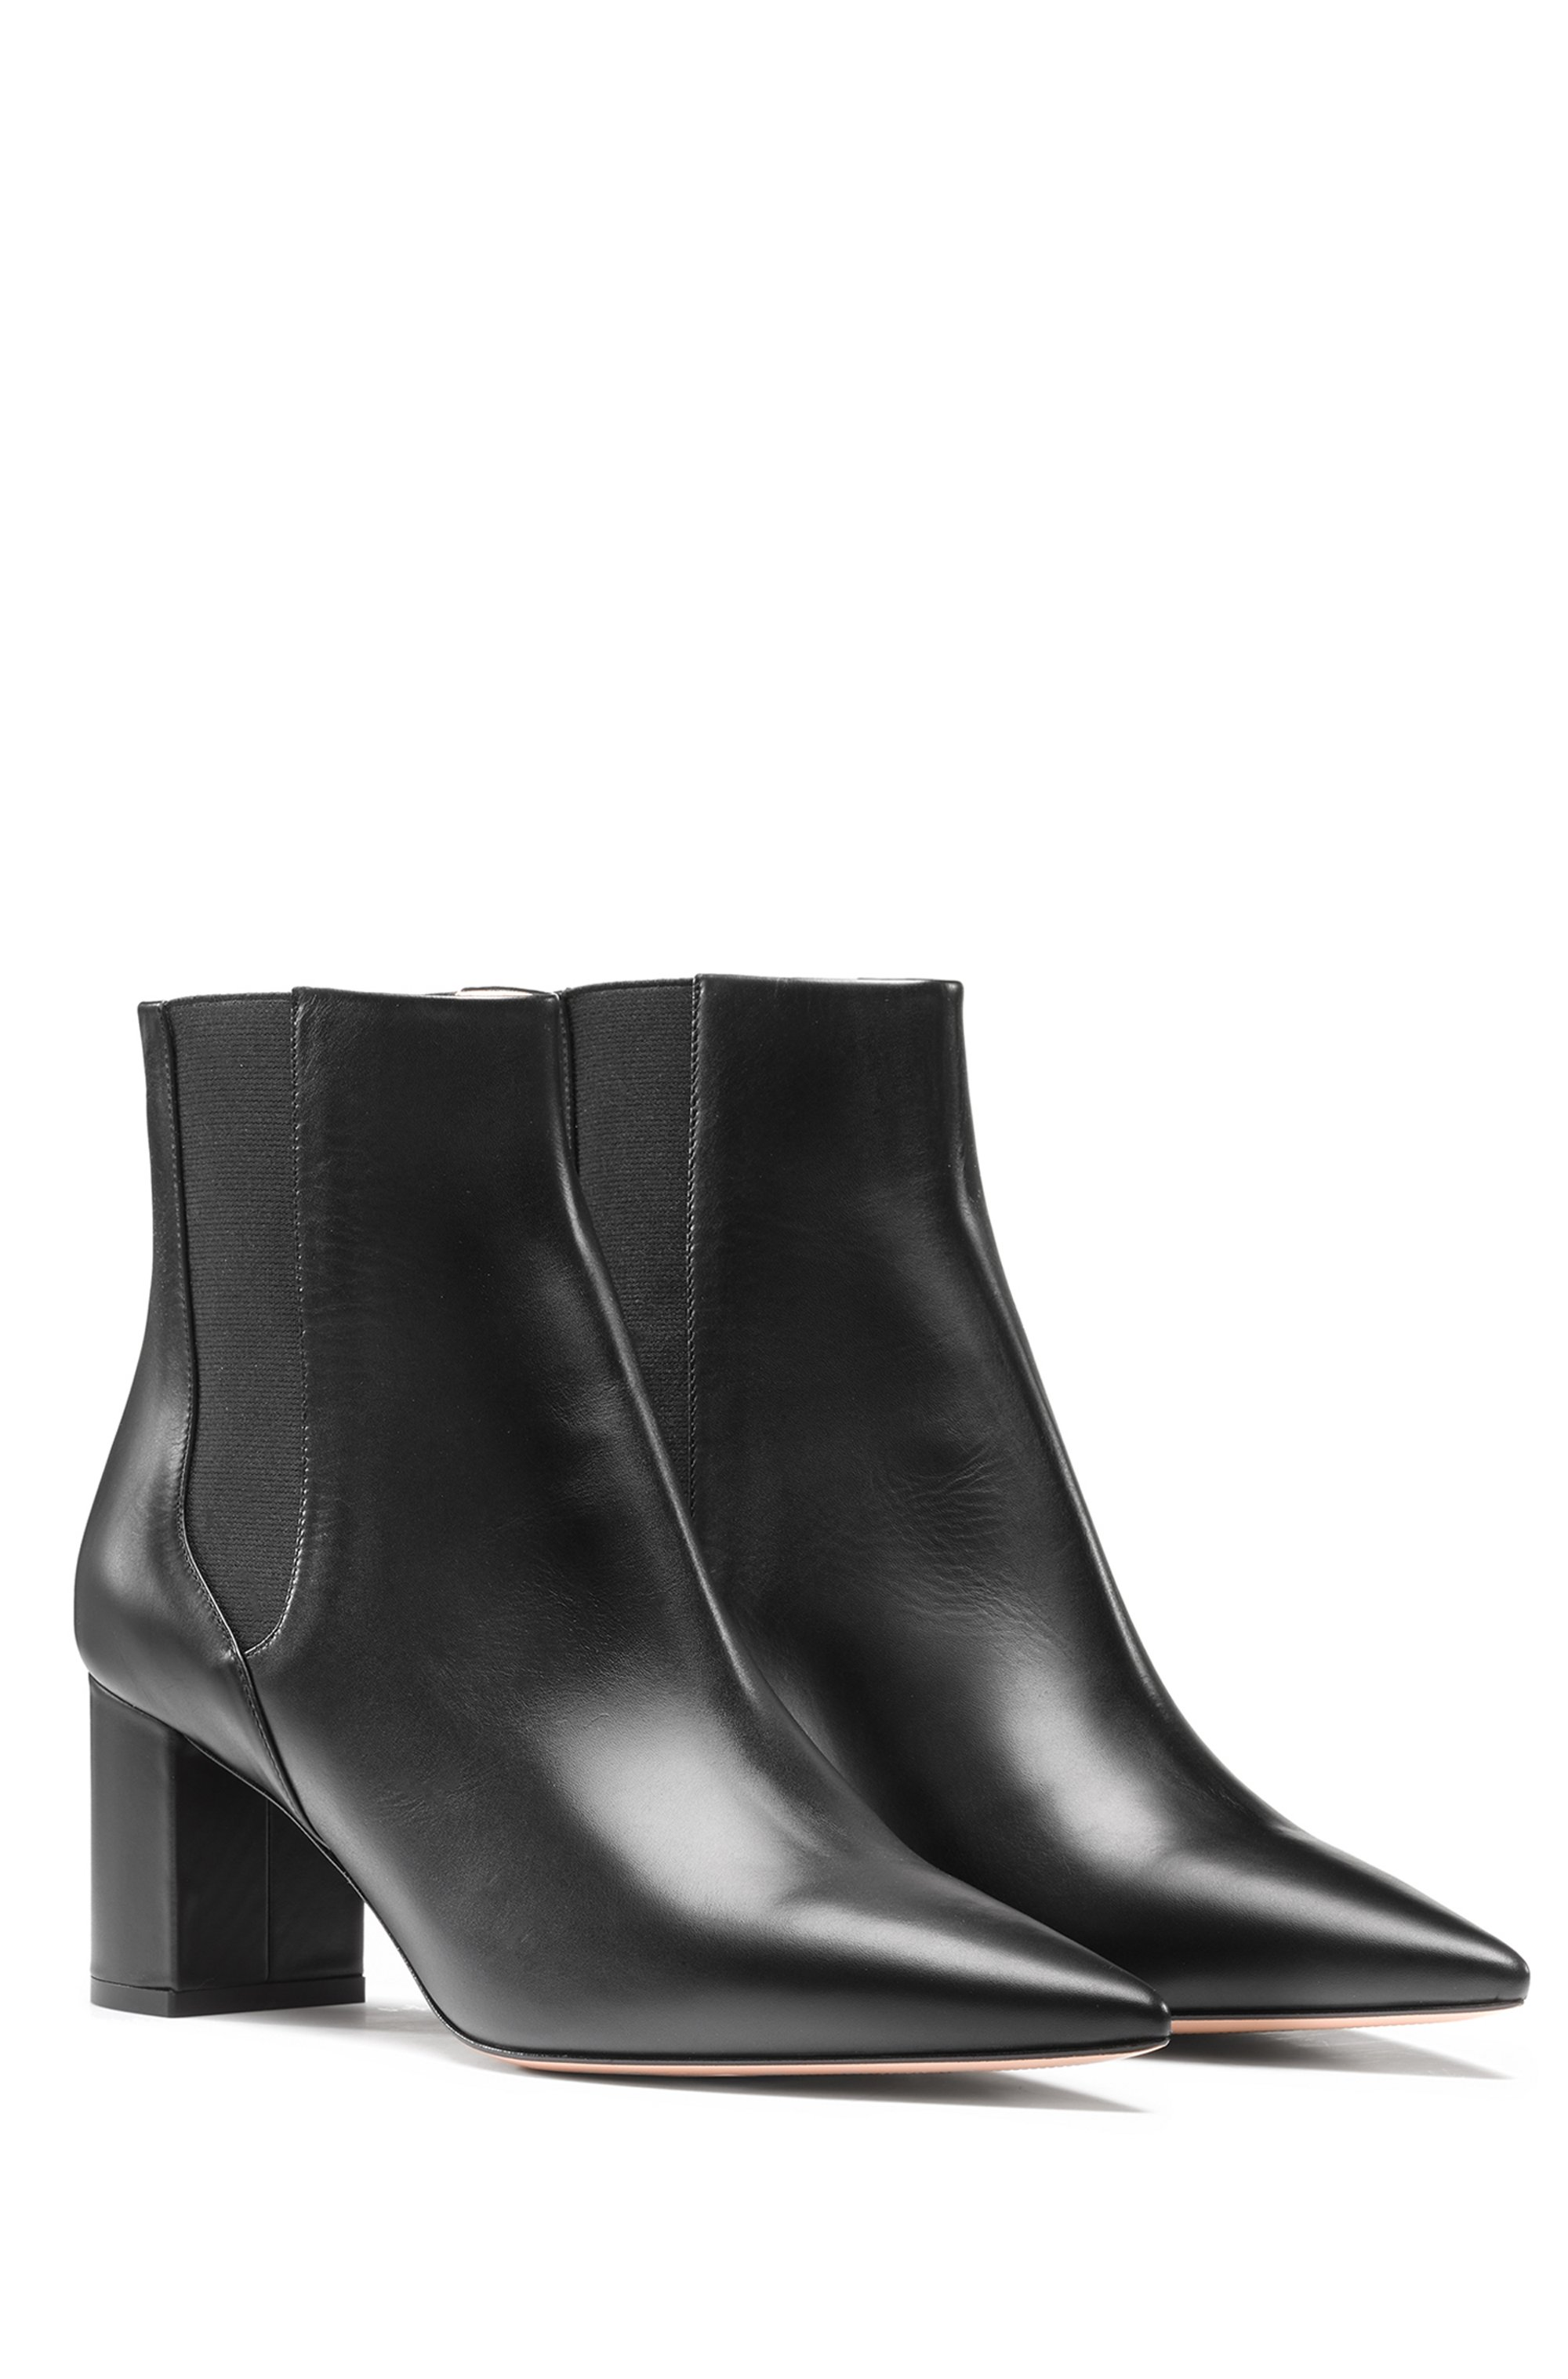 Pointed-toe ankle boots in Italian calf leather